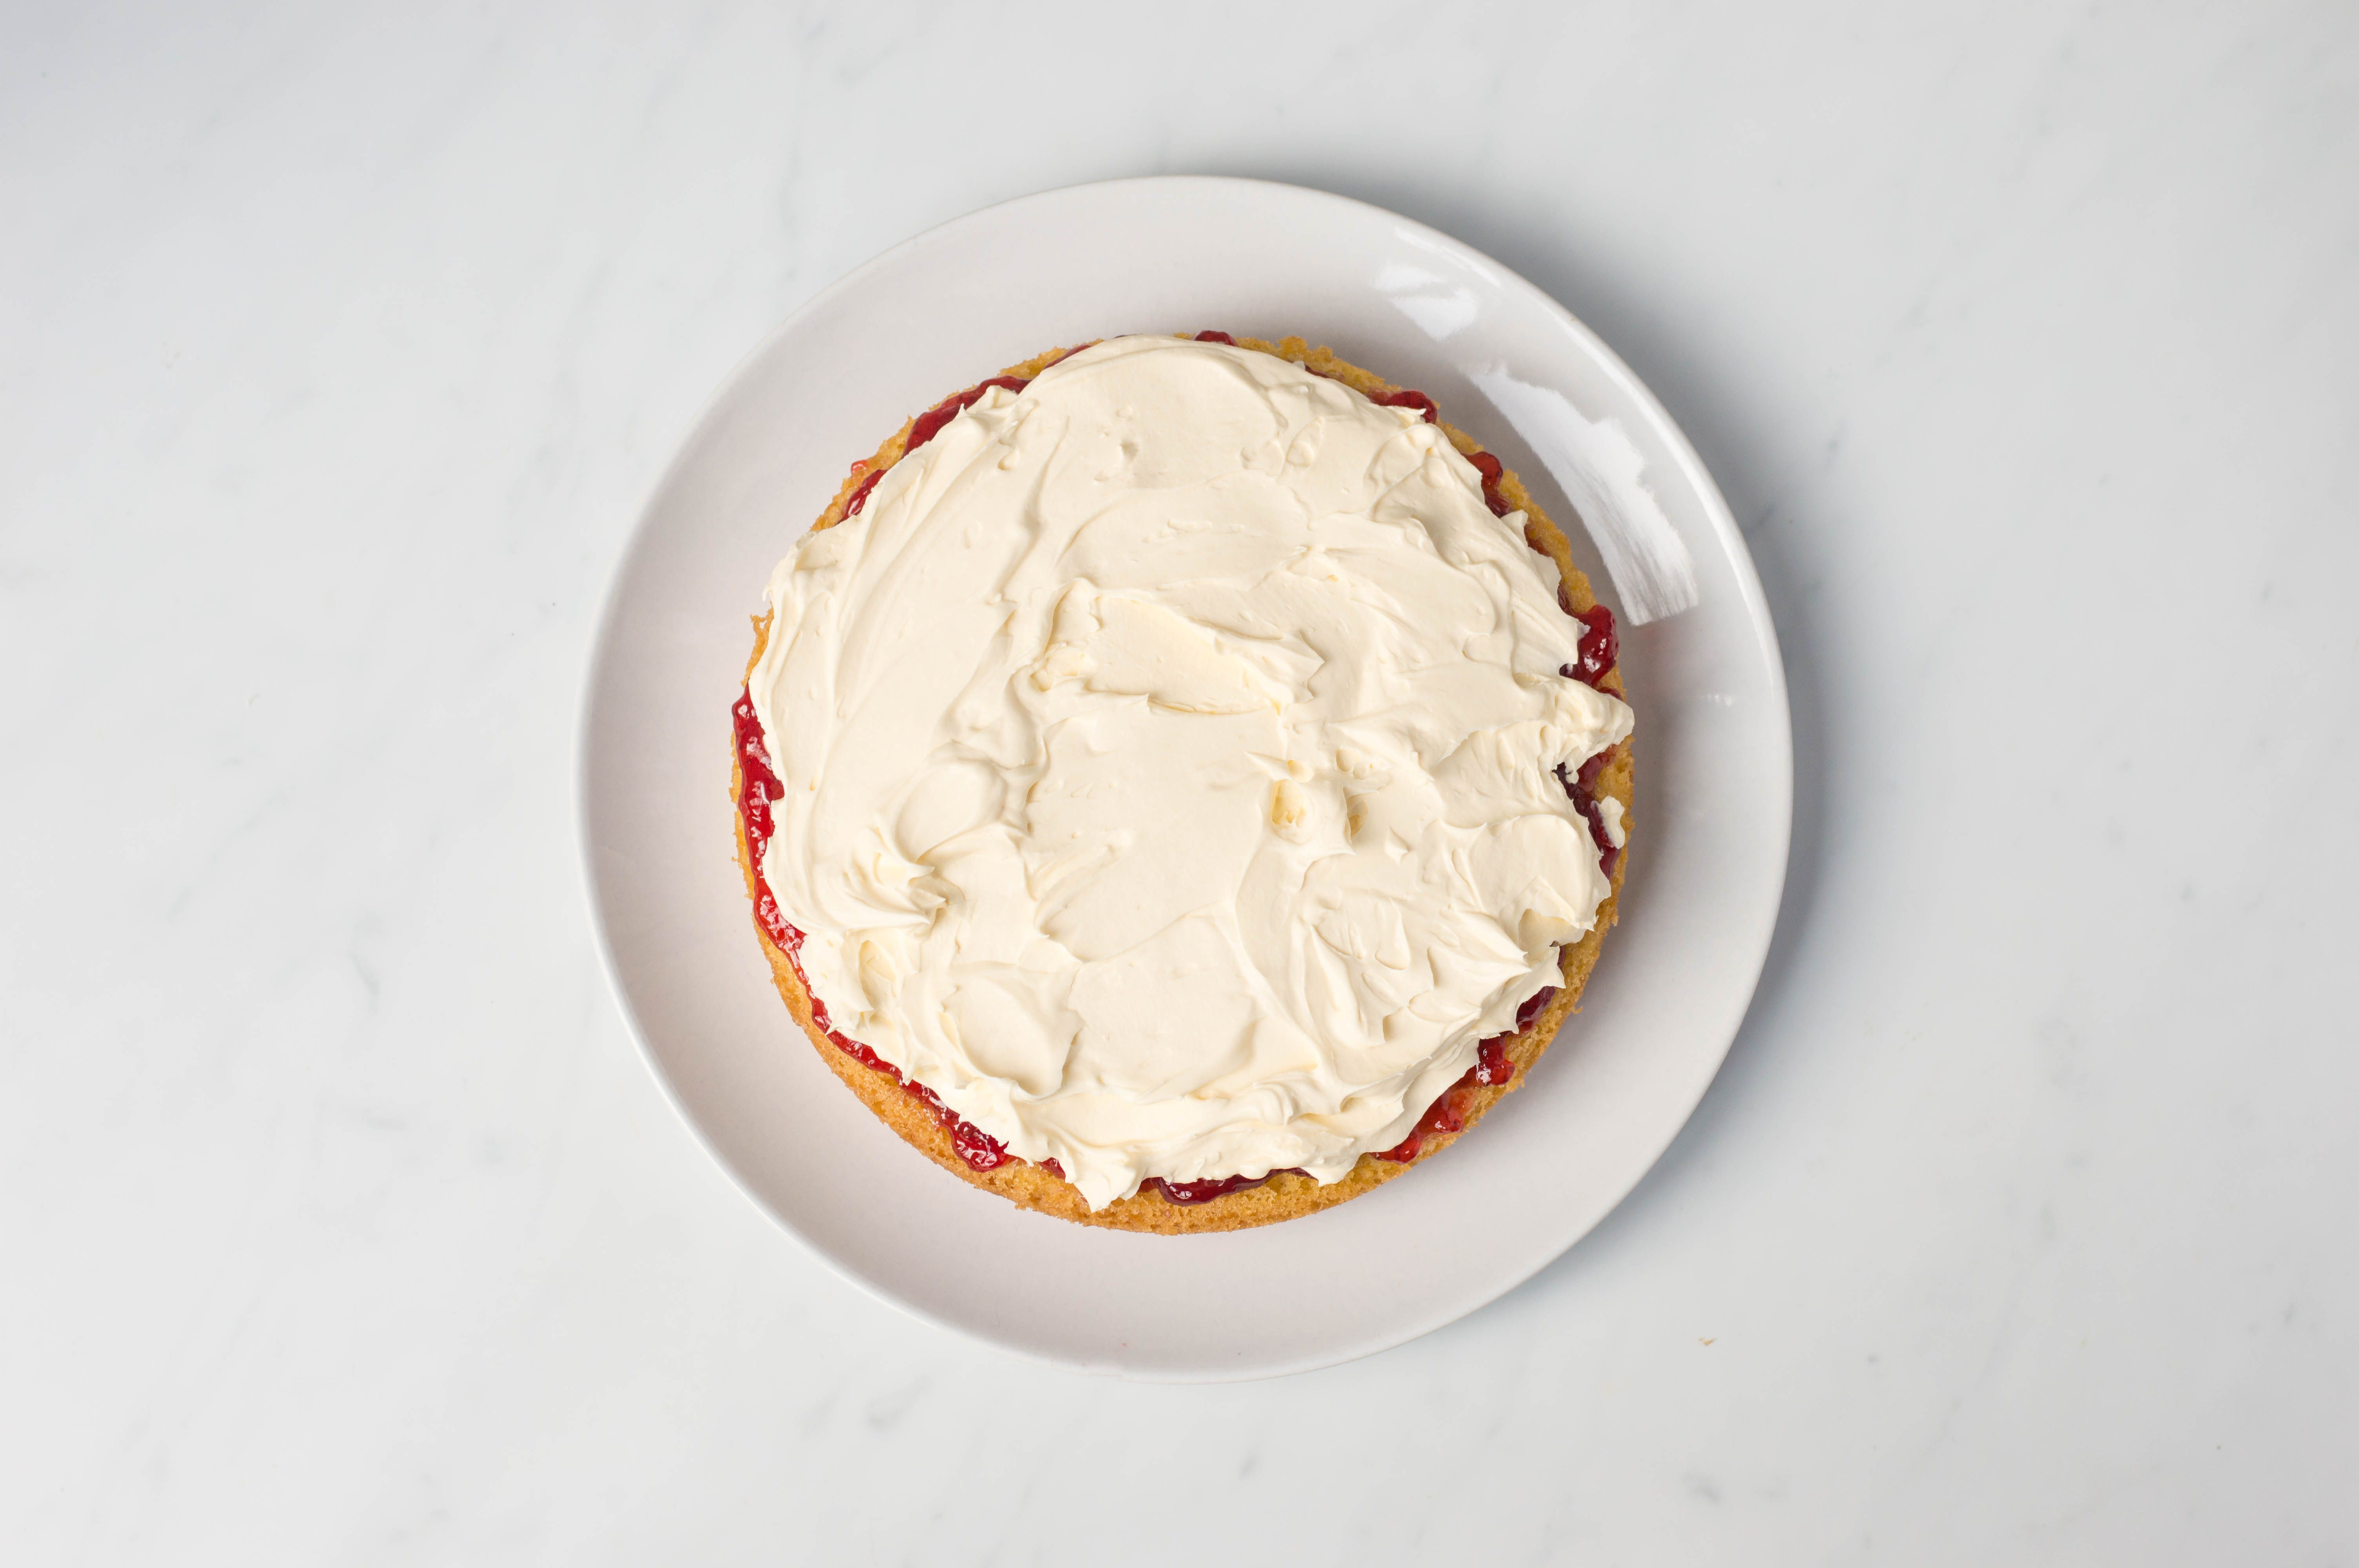 Add a layer of whipped cream to the cake